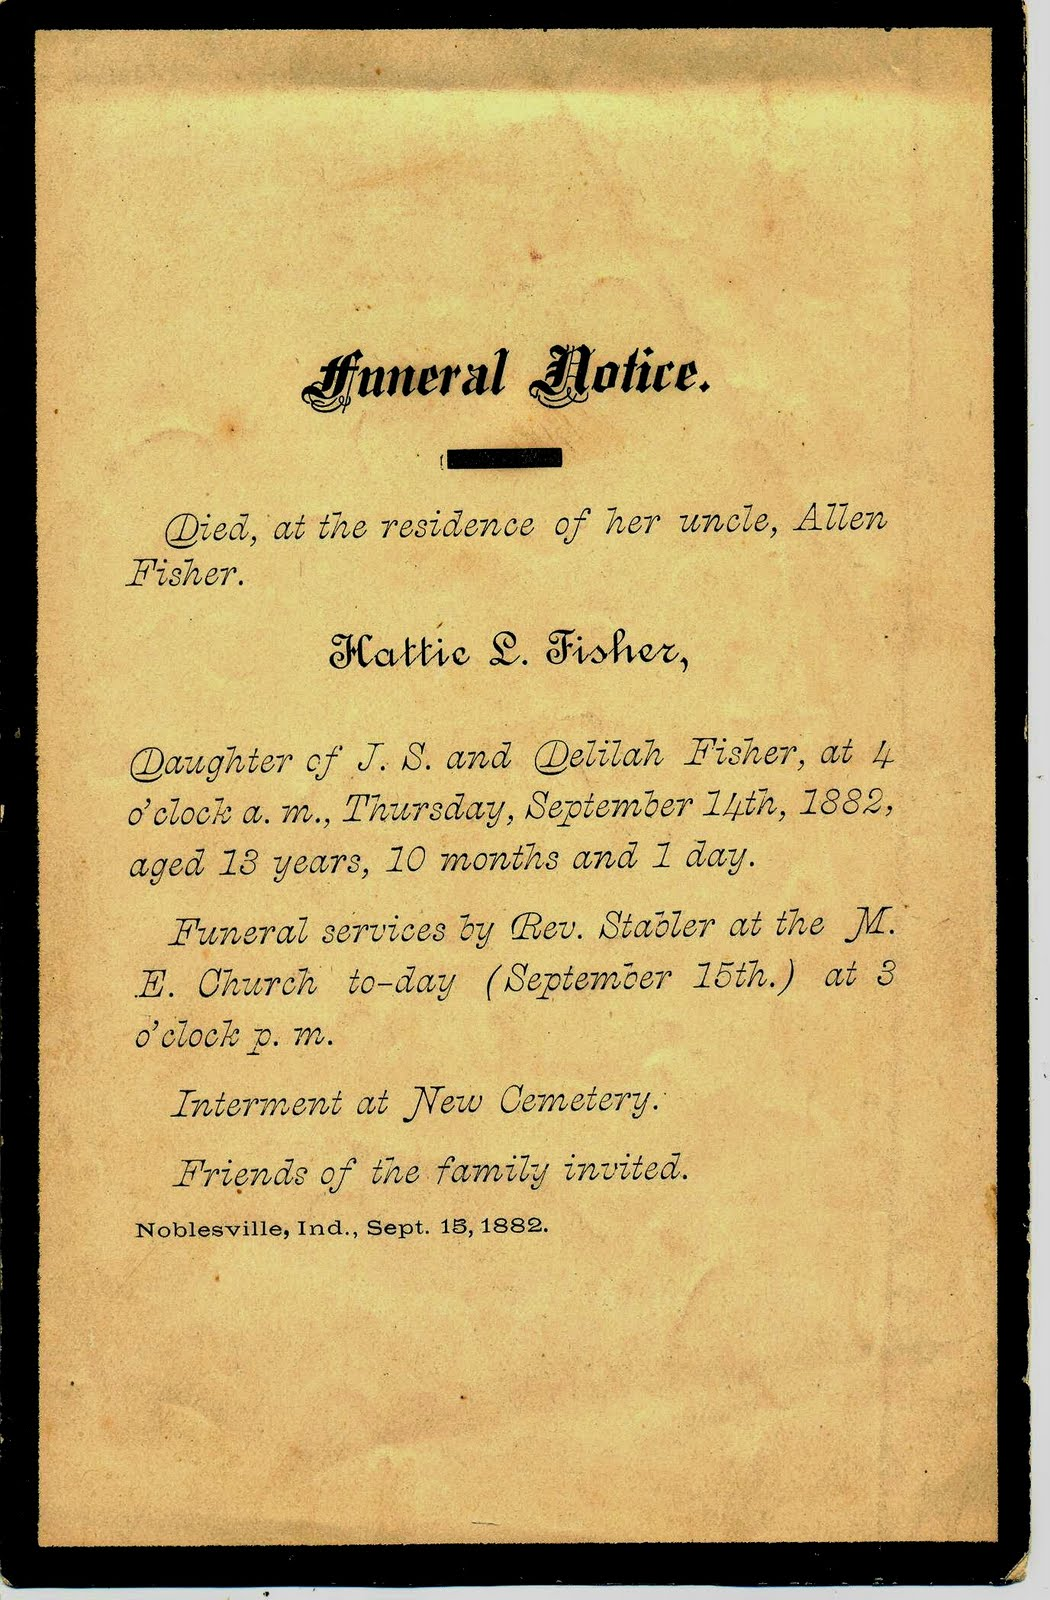 A Land of Deepest Shade: Death Memorabilia, Part 4: Funeral